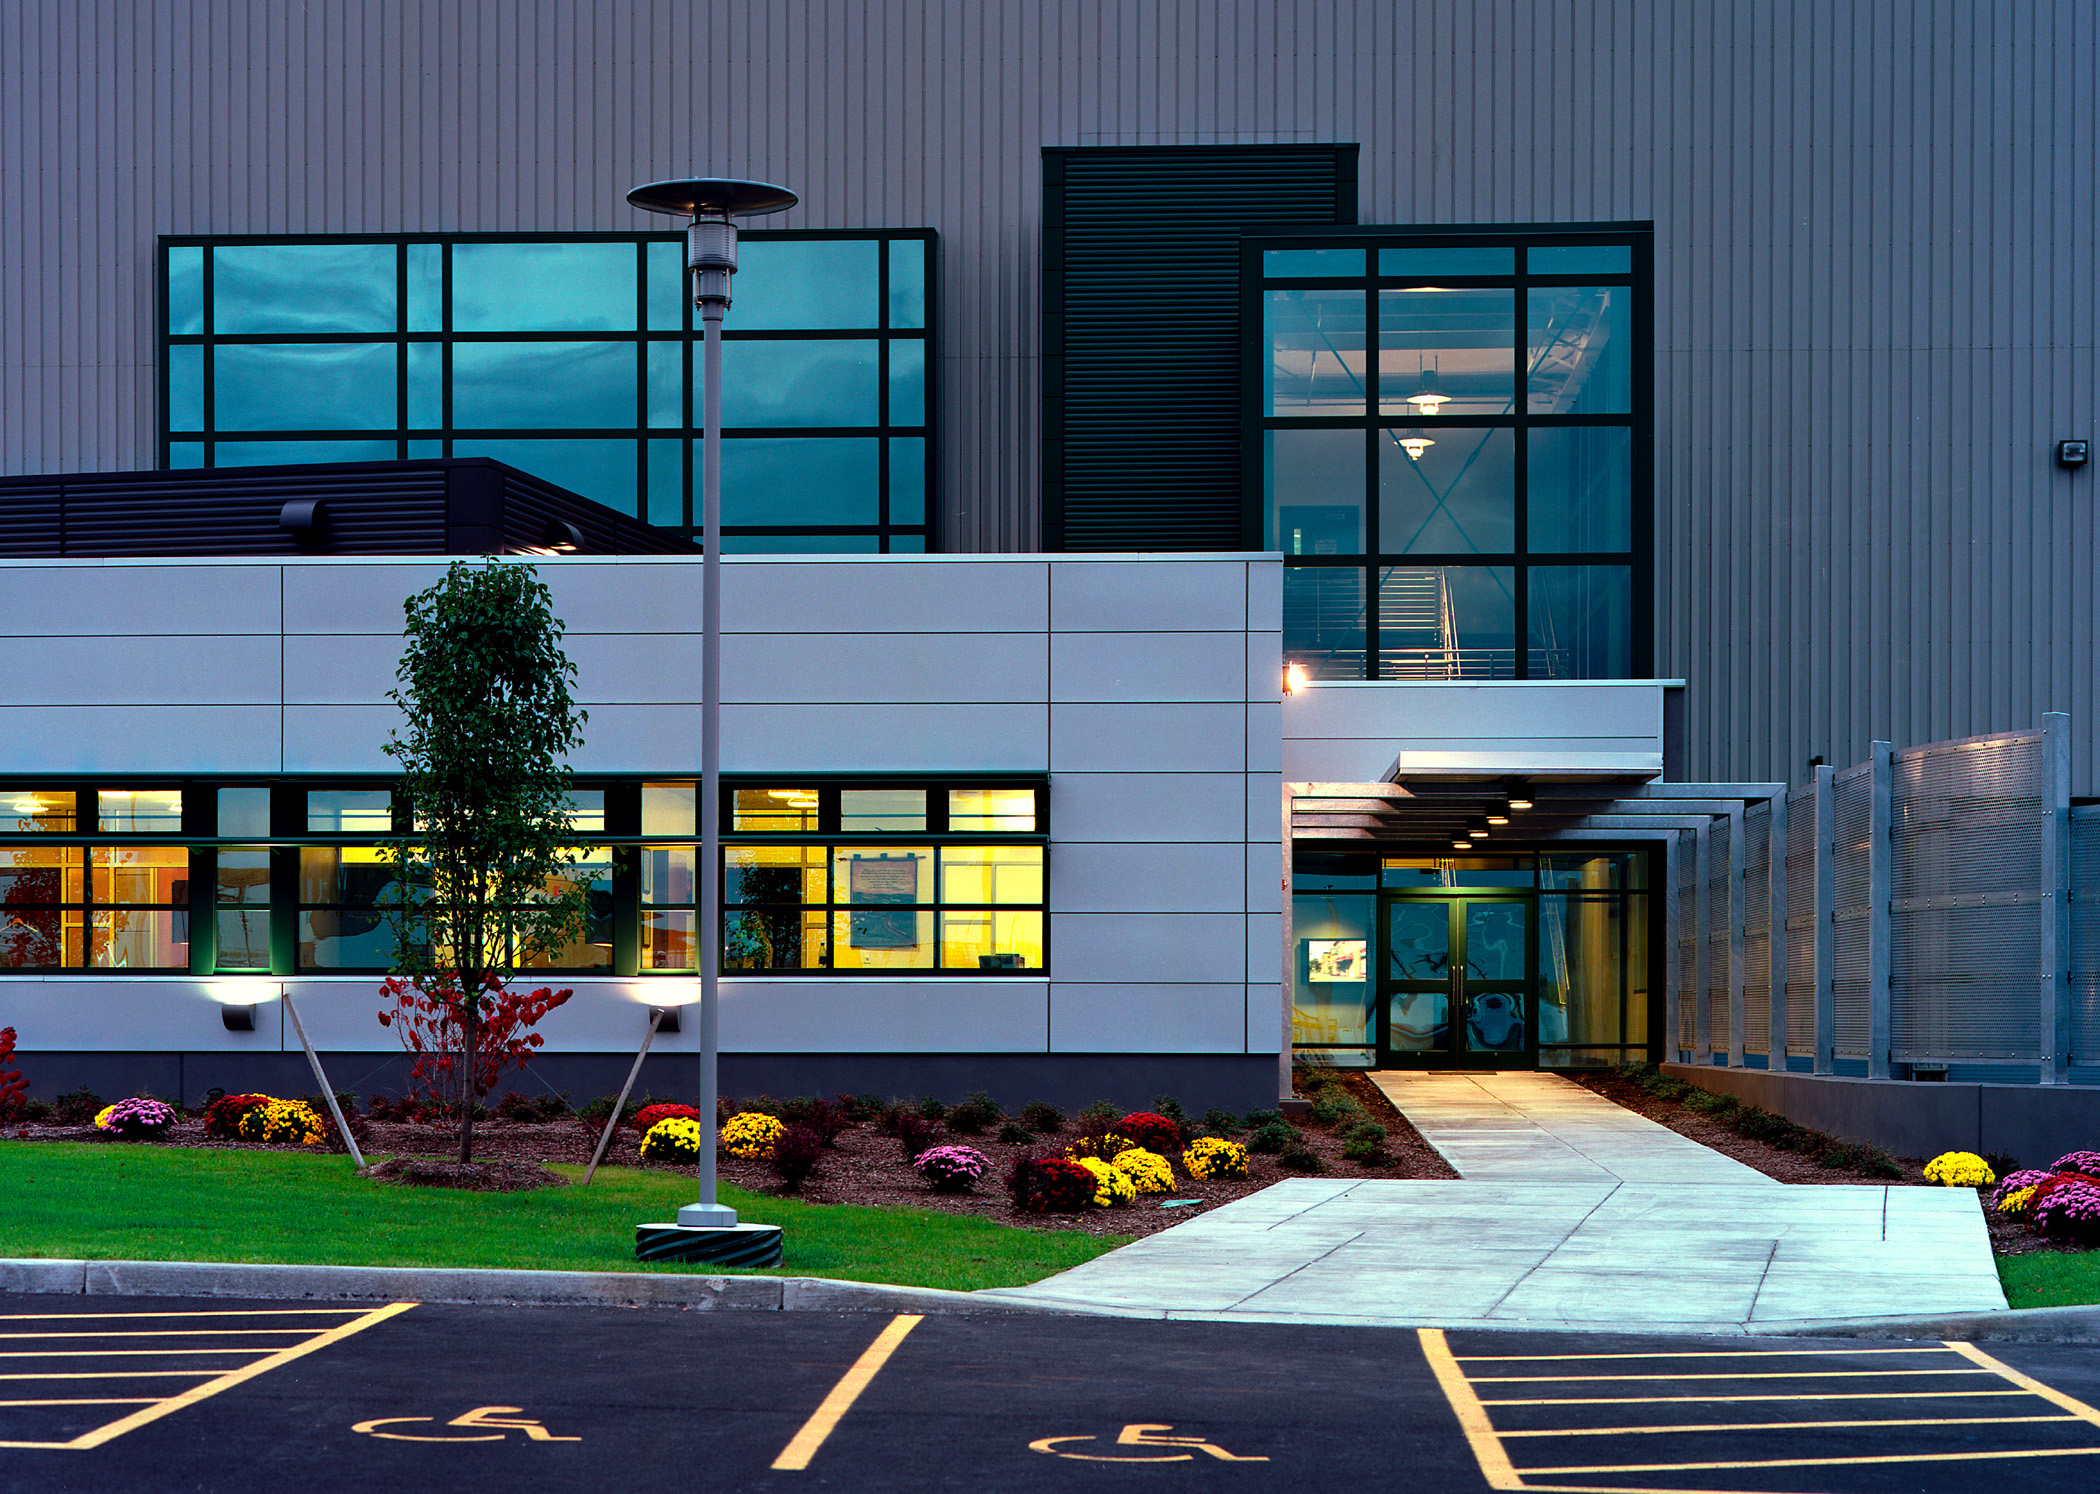 John P. Stopen Solvay Paperboard Industrial Project entrance at night